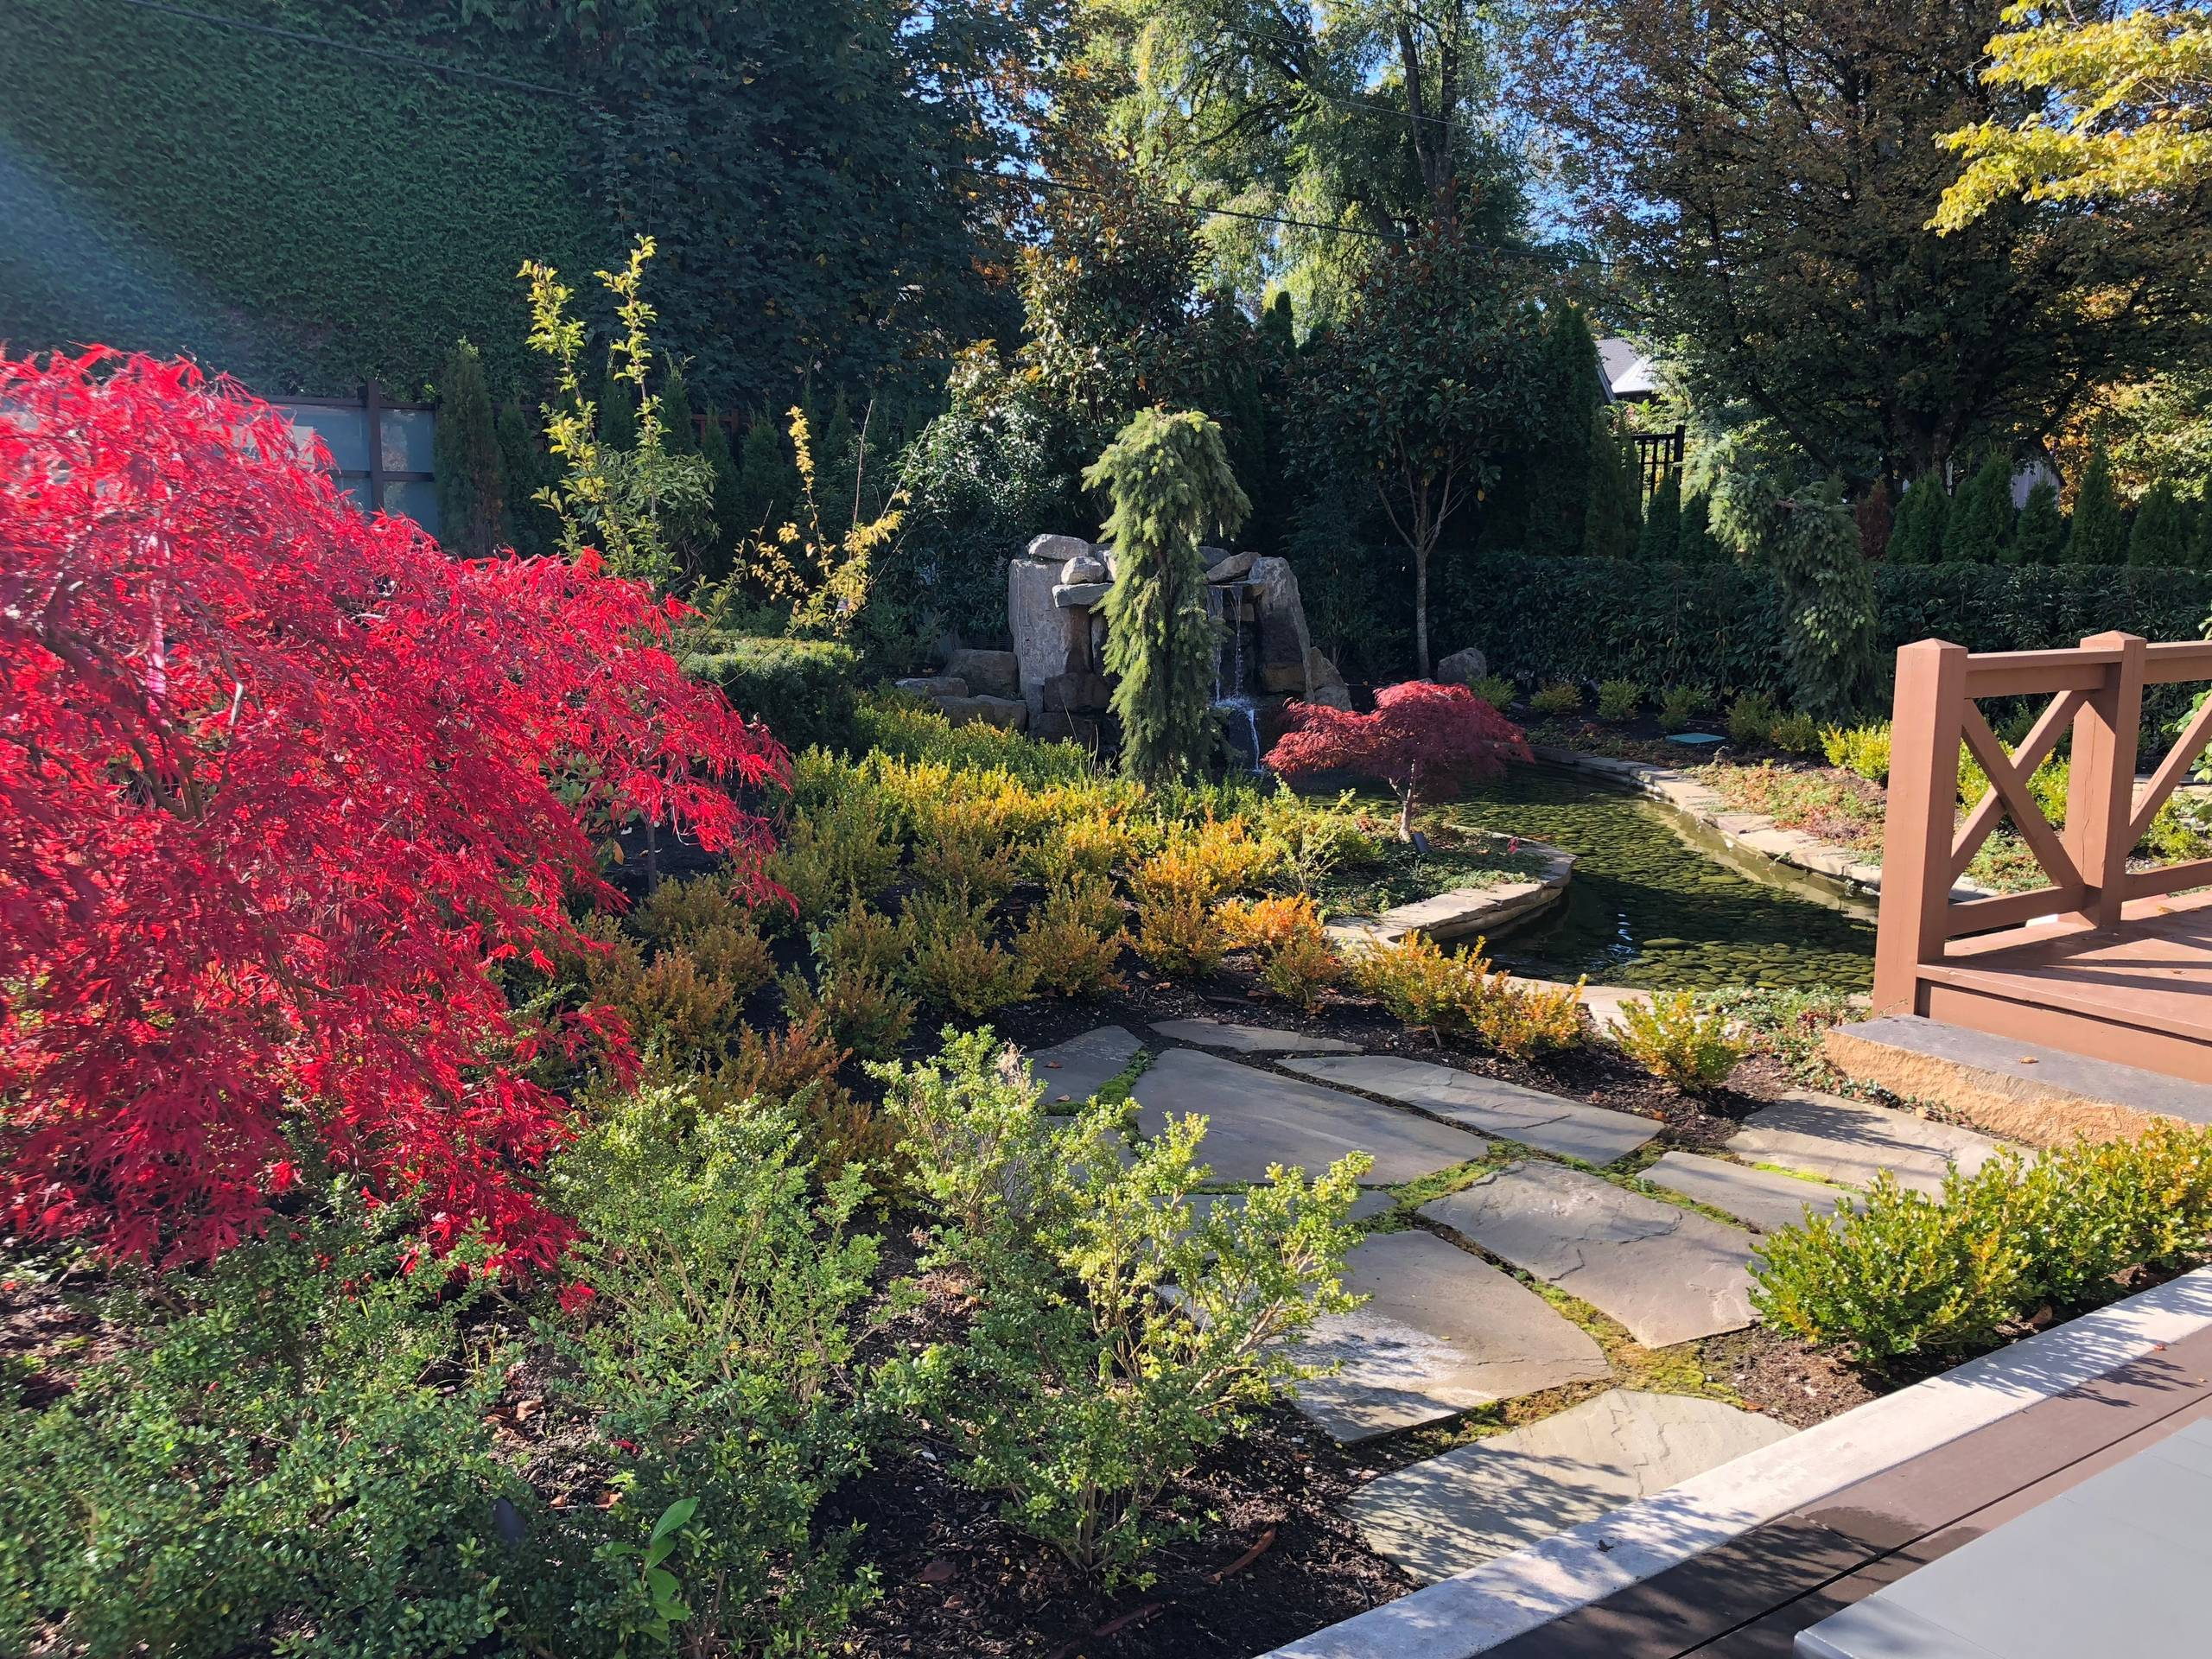 Classical Water Garden in Shaughnessy